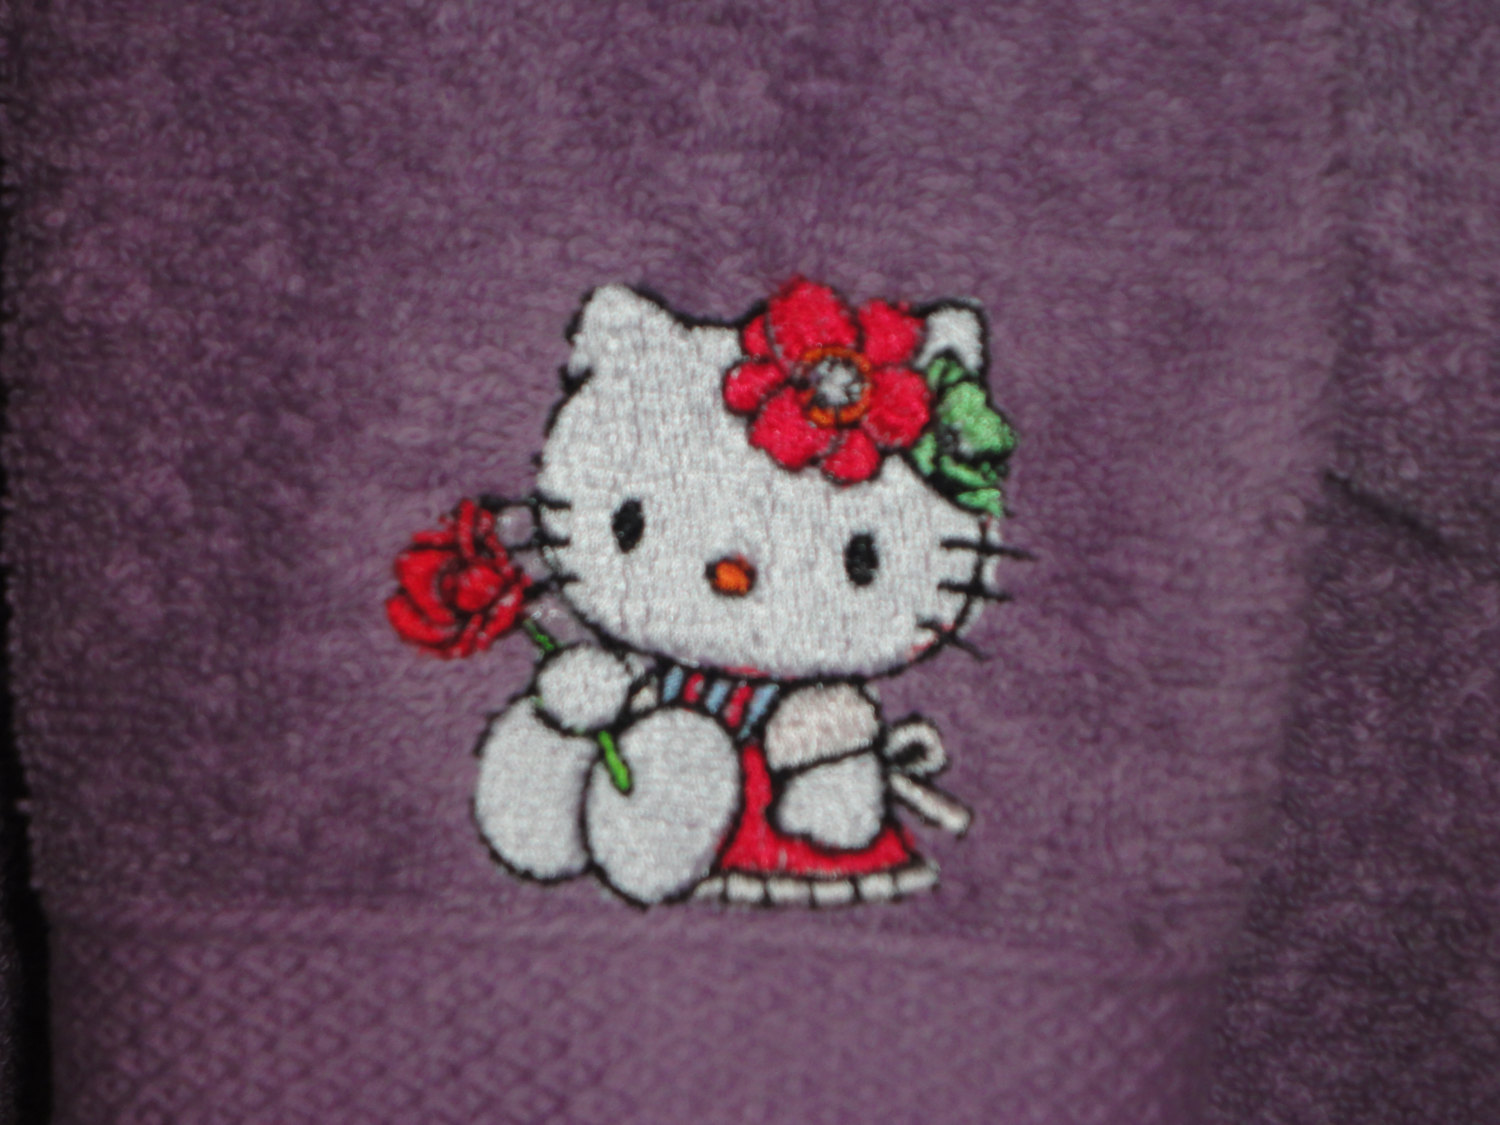 Purple towel with embroidered Hello Kitty on it